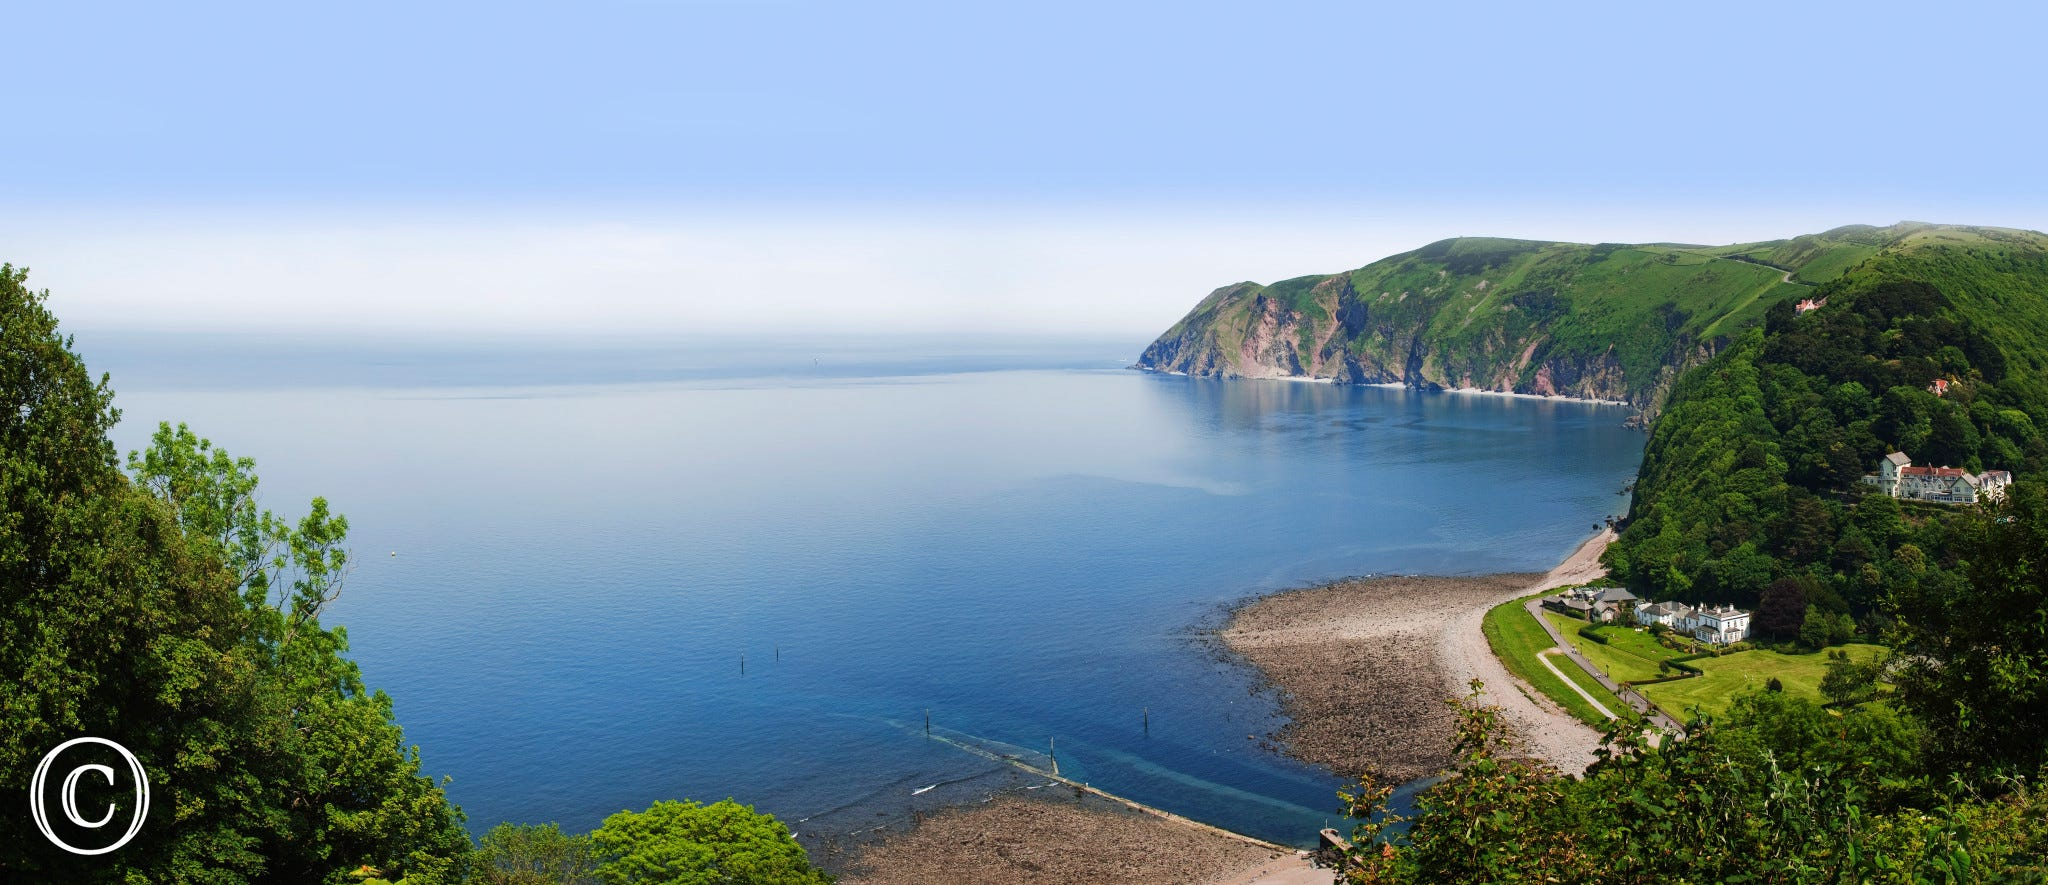 The view of Lynmouth looking towards Countisbury Hill